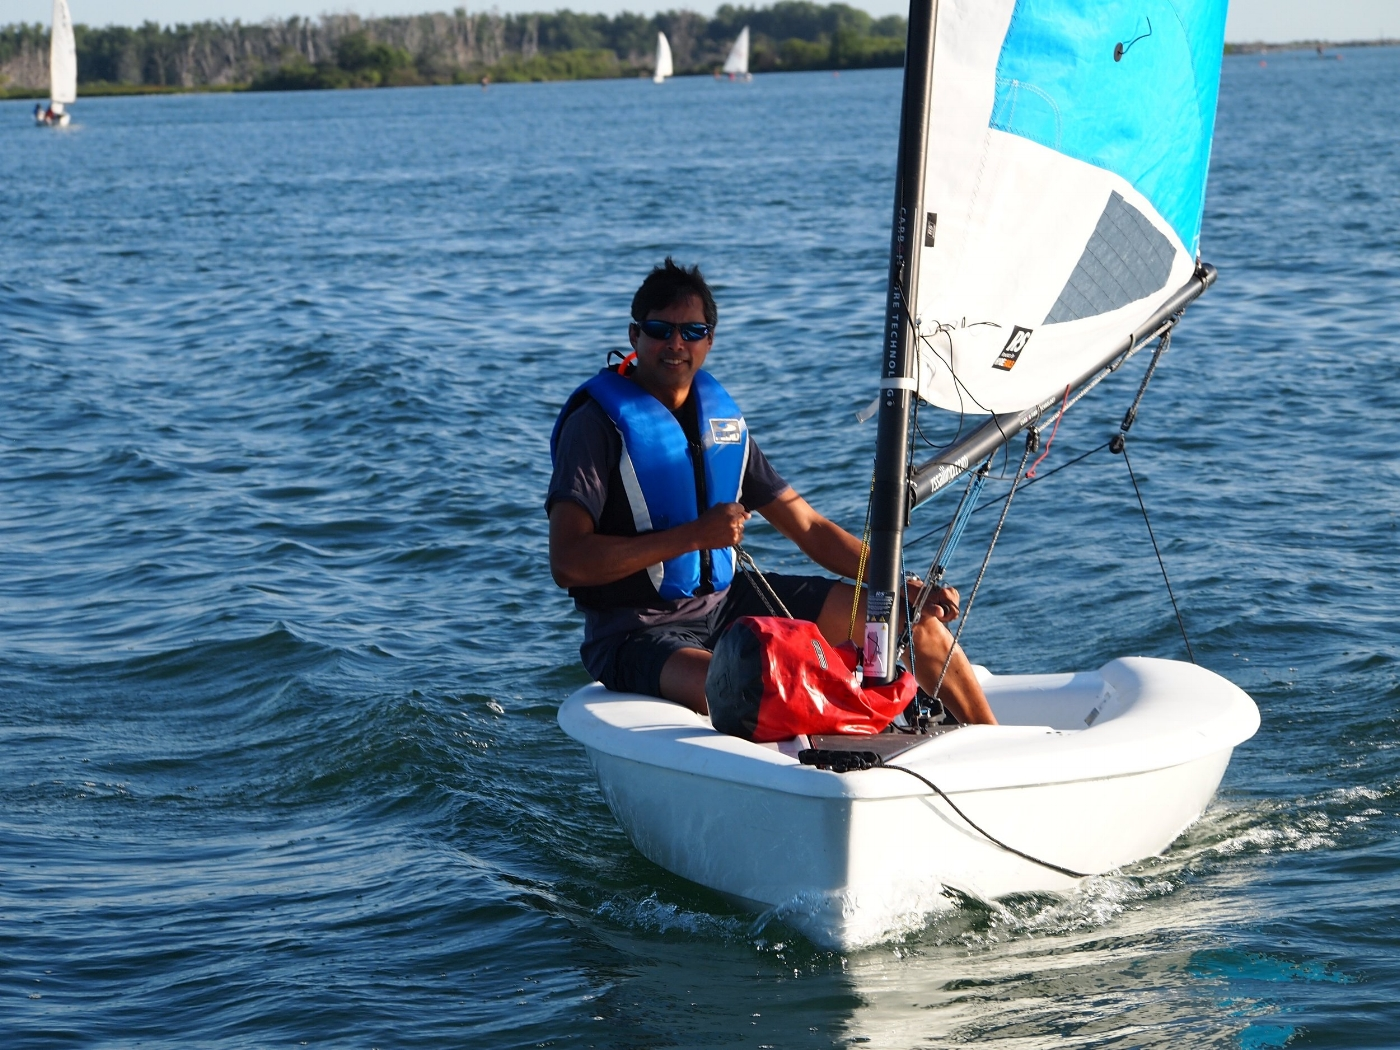 RS Neo single person sailboat - available for pay as you go sailing Toronto